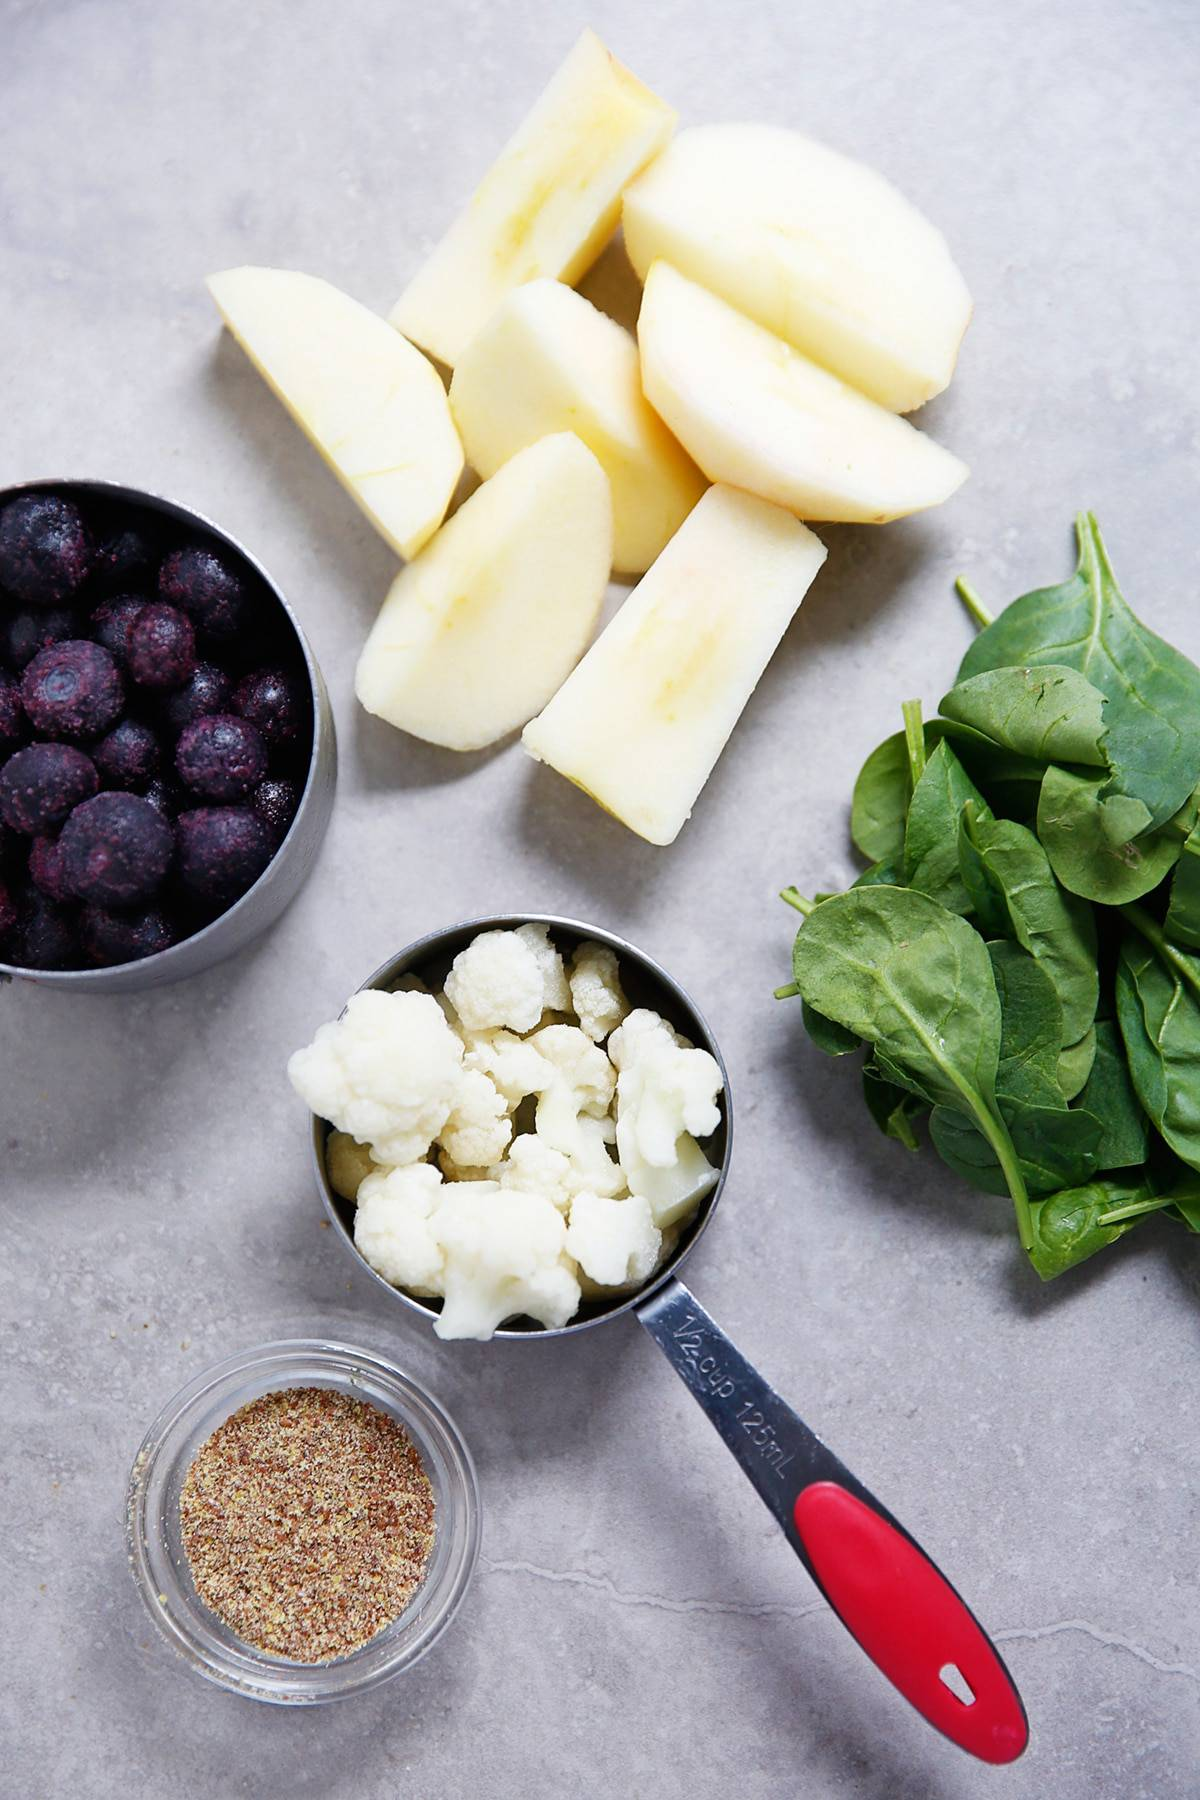 Fiber Smoothie Ingredients